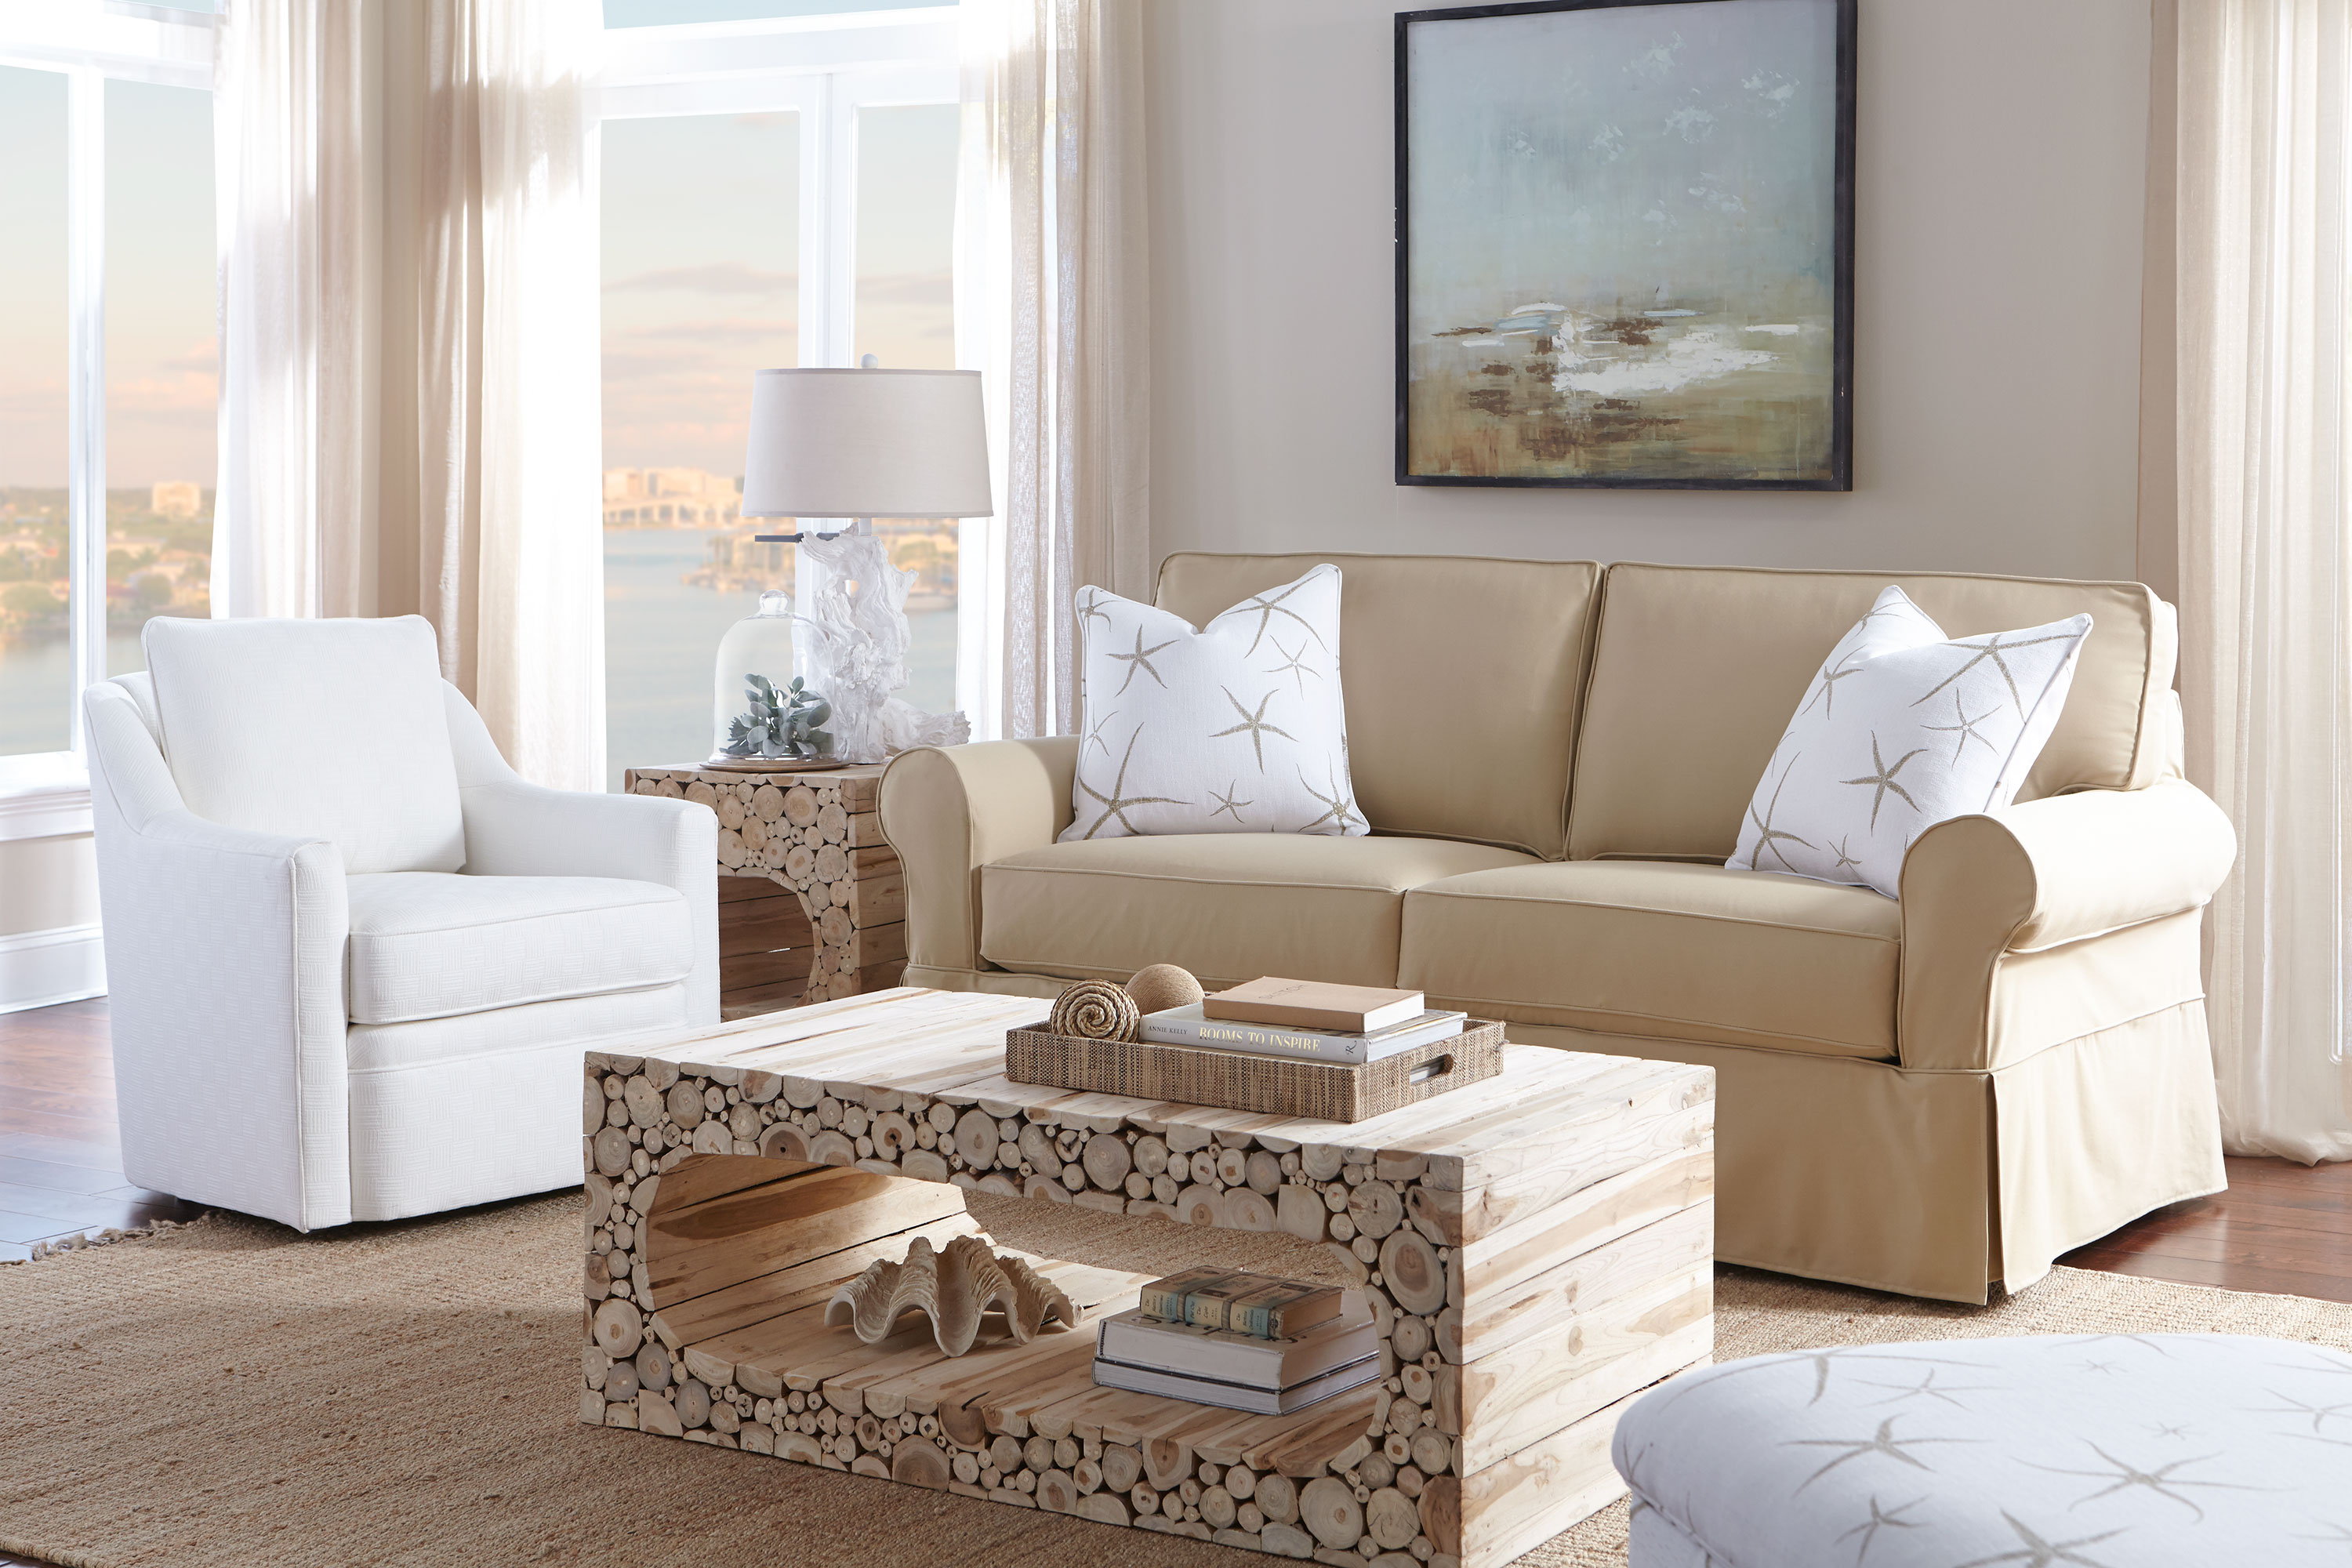 Nantucket A910 Slipcover Sofa 350 Fabrics and